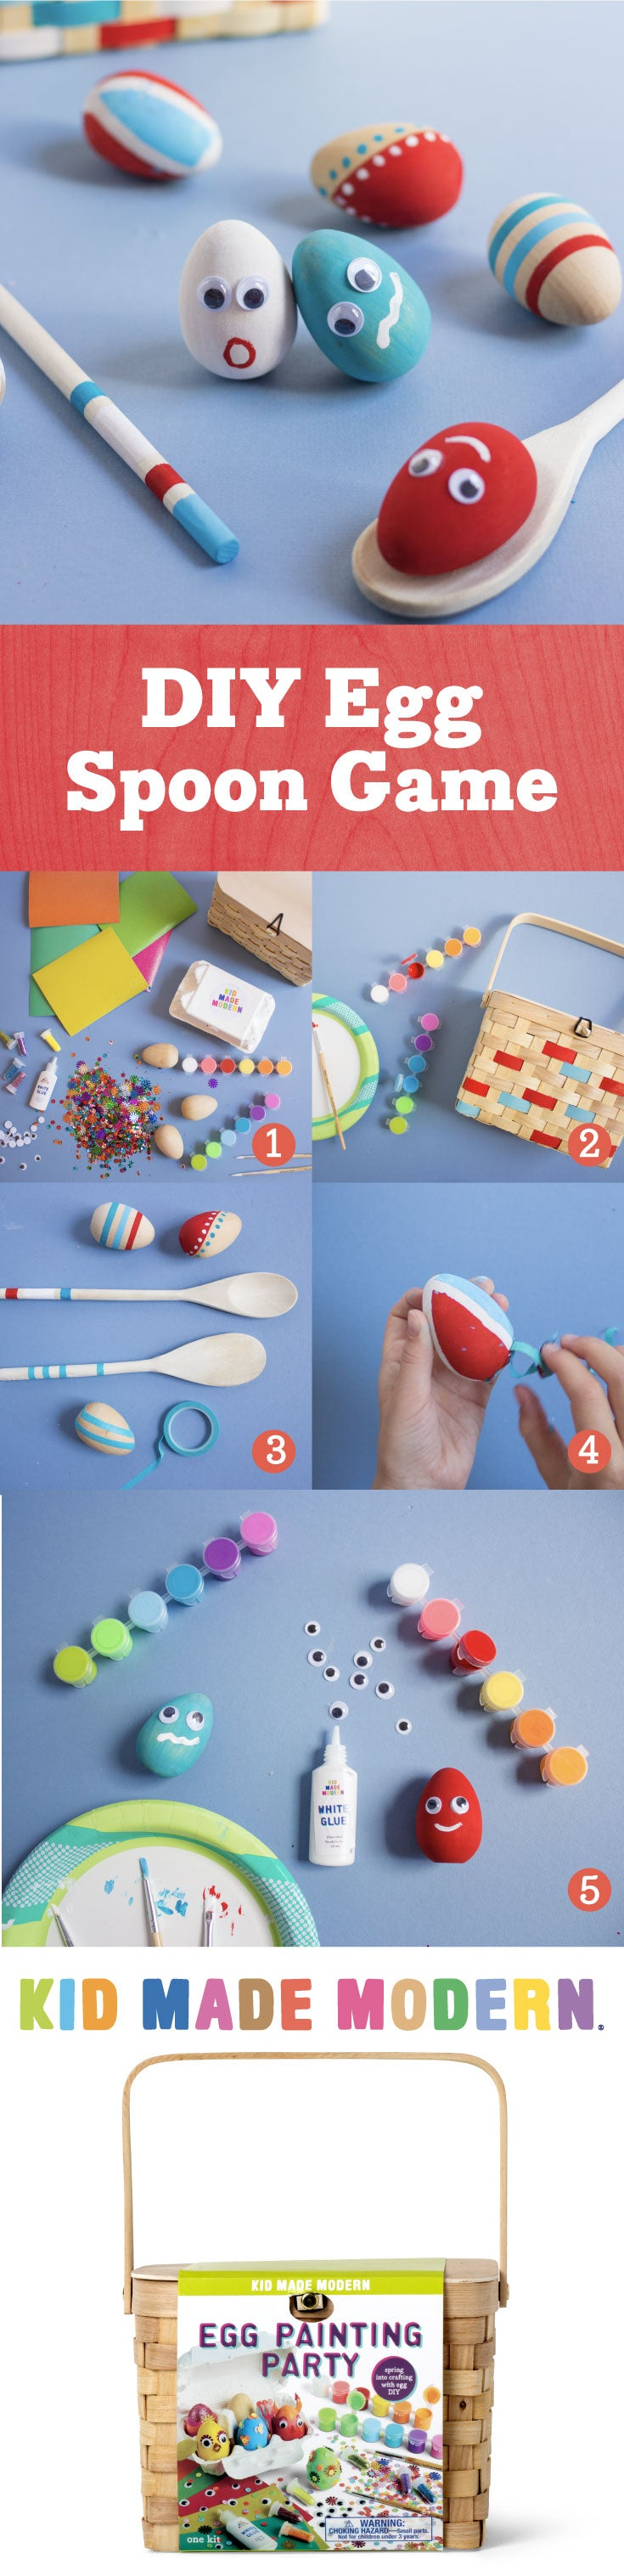 Egg & Spoon Game Pinterest